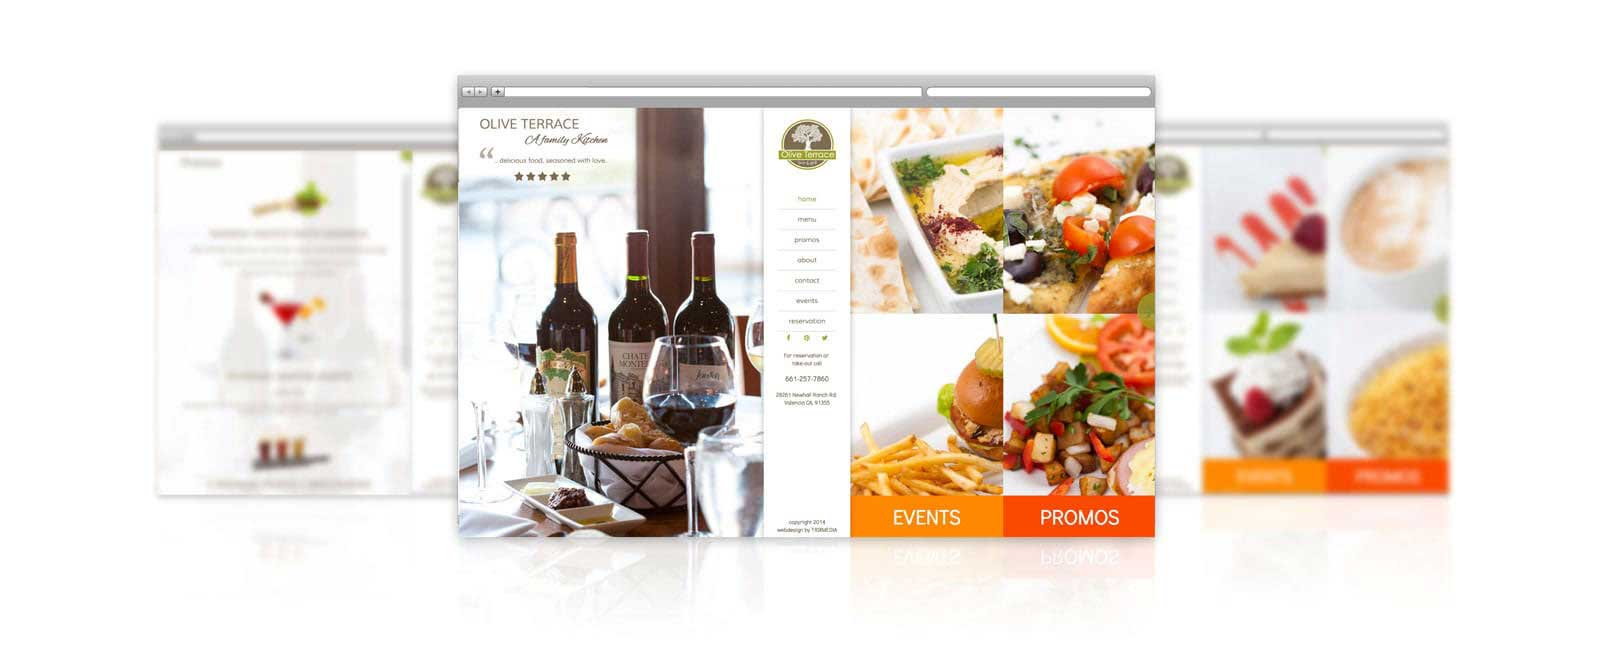 Olive Terrace Restaurant Web Design